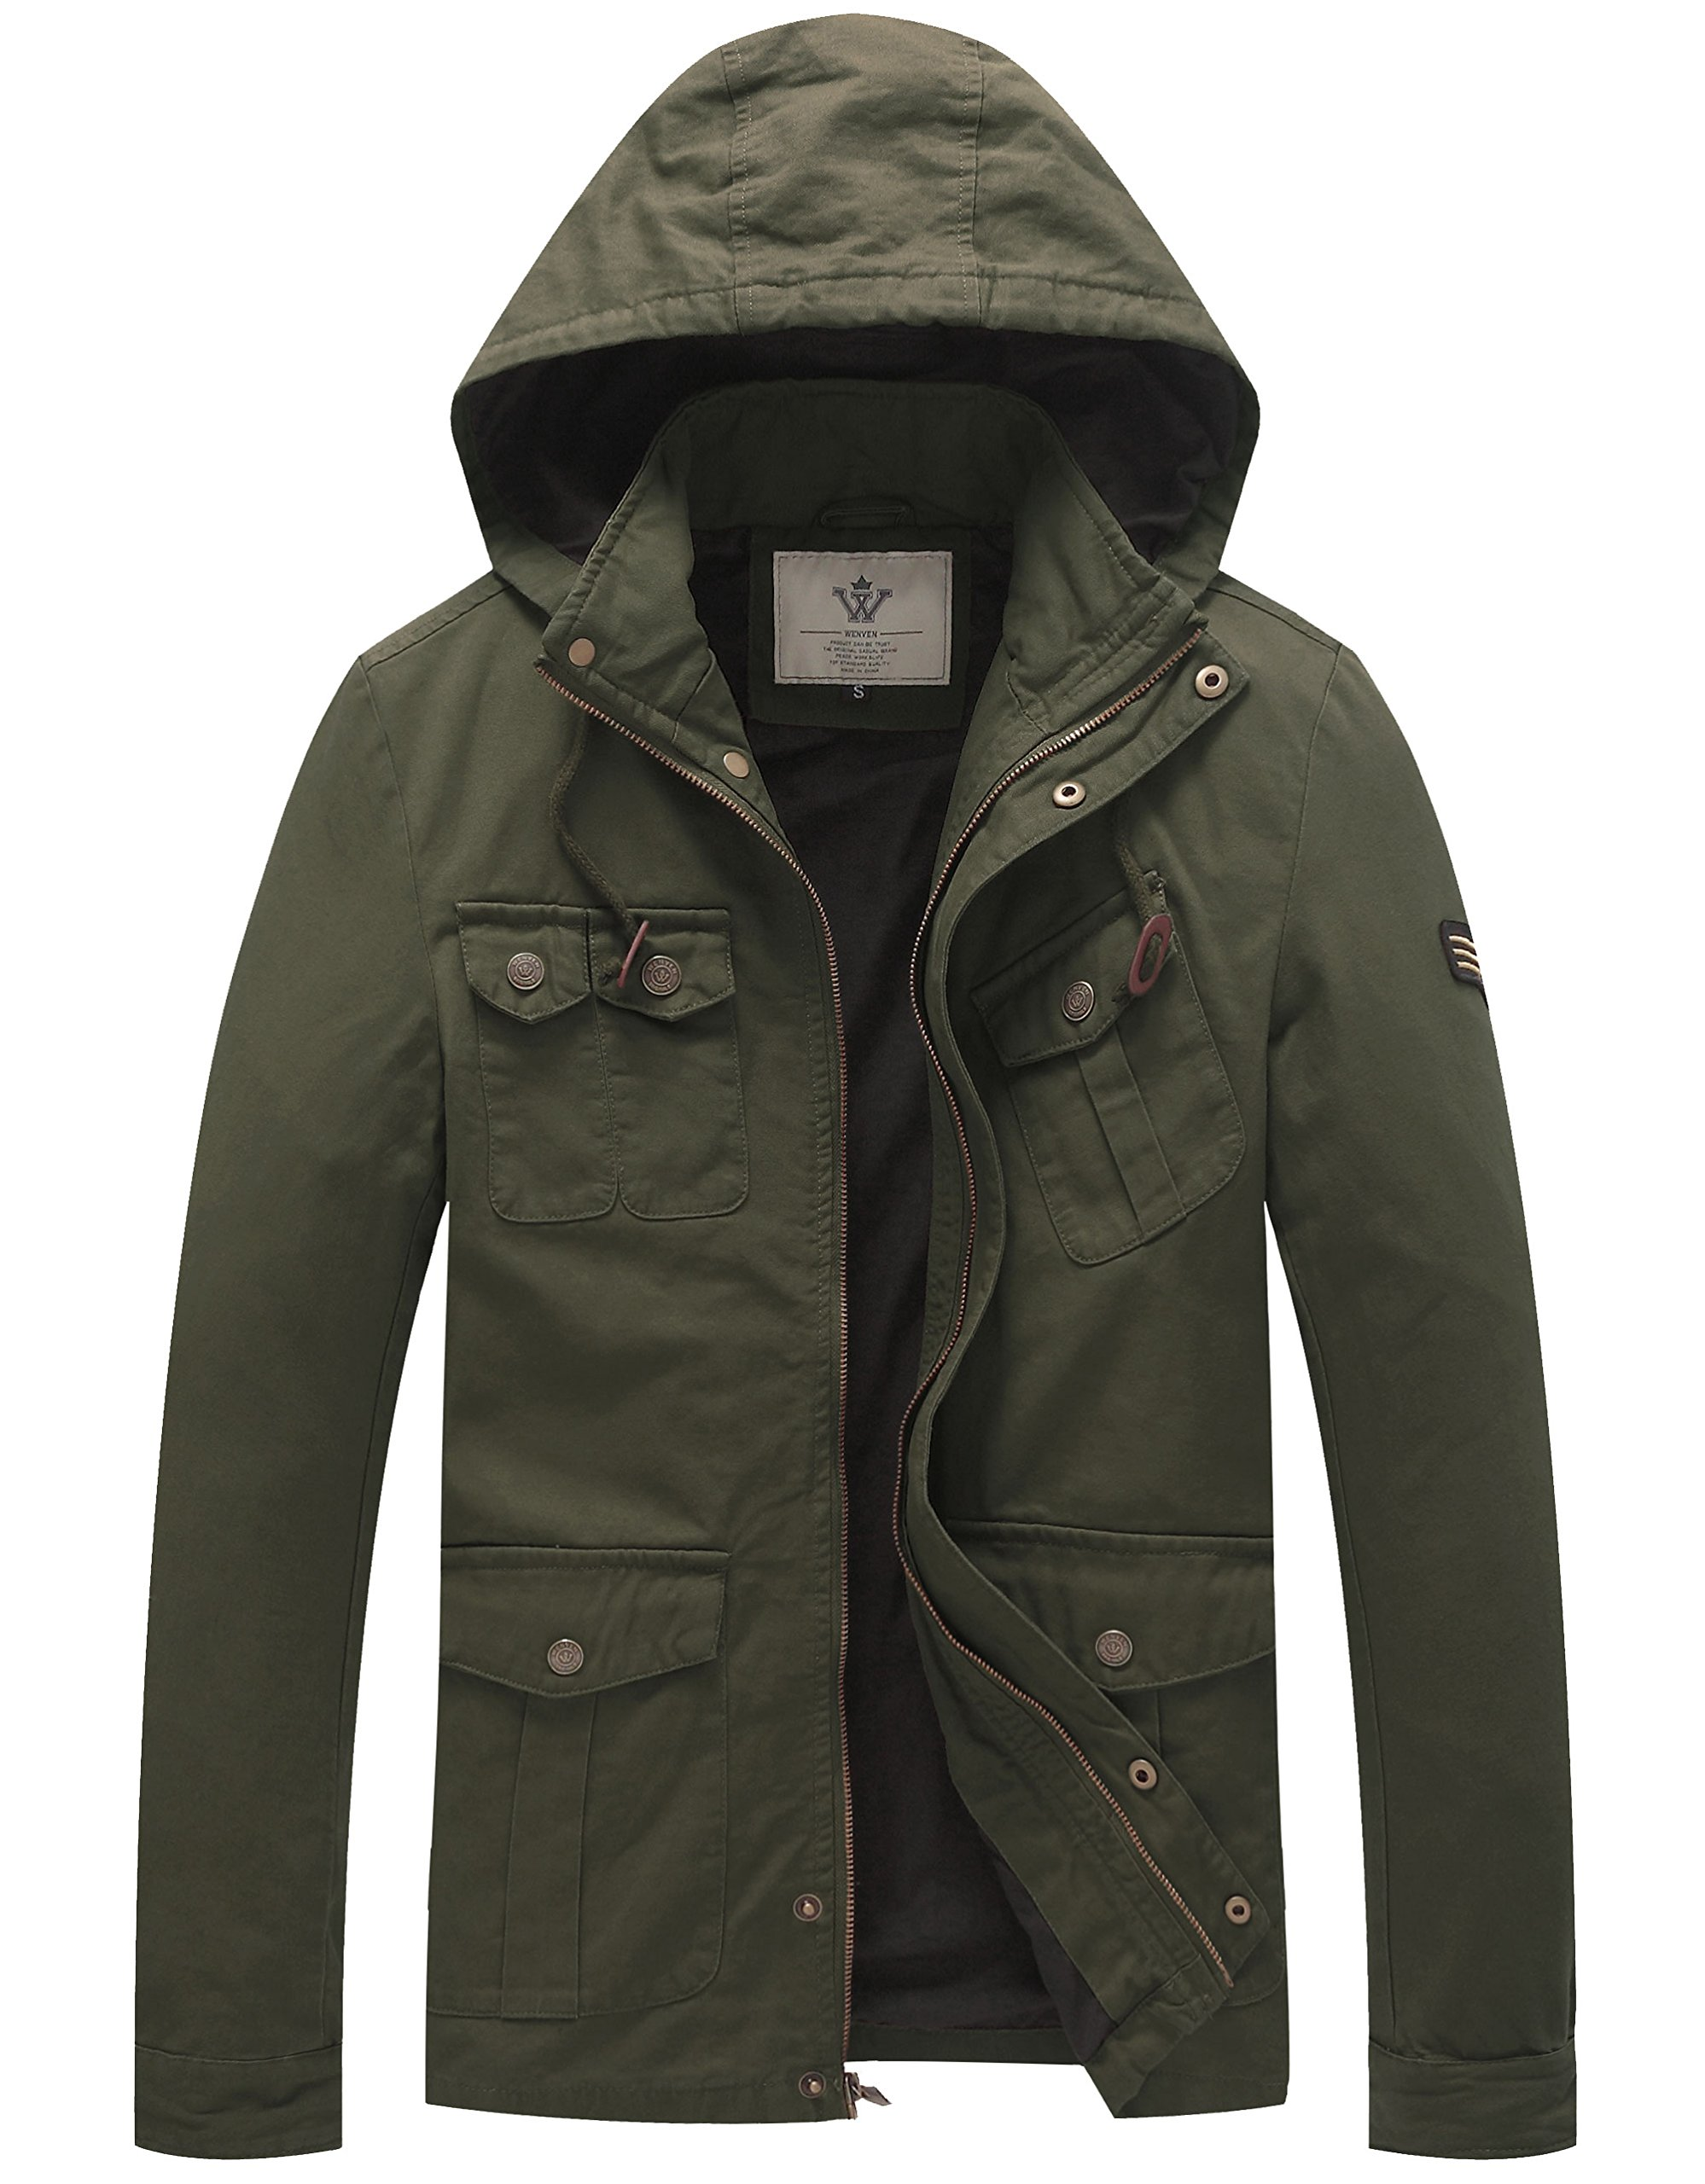 WenVen Men's Hooded Cotton Military Jackets (Military Green,XL) by WenVen